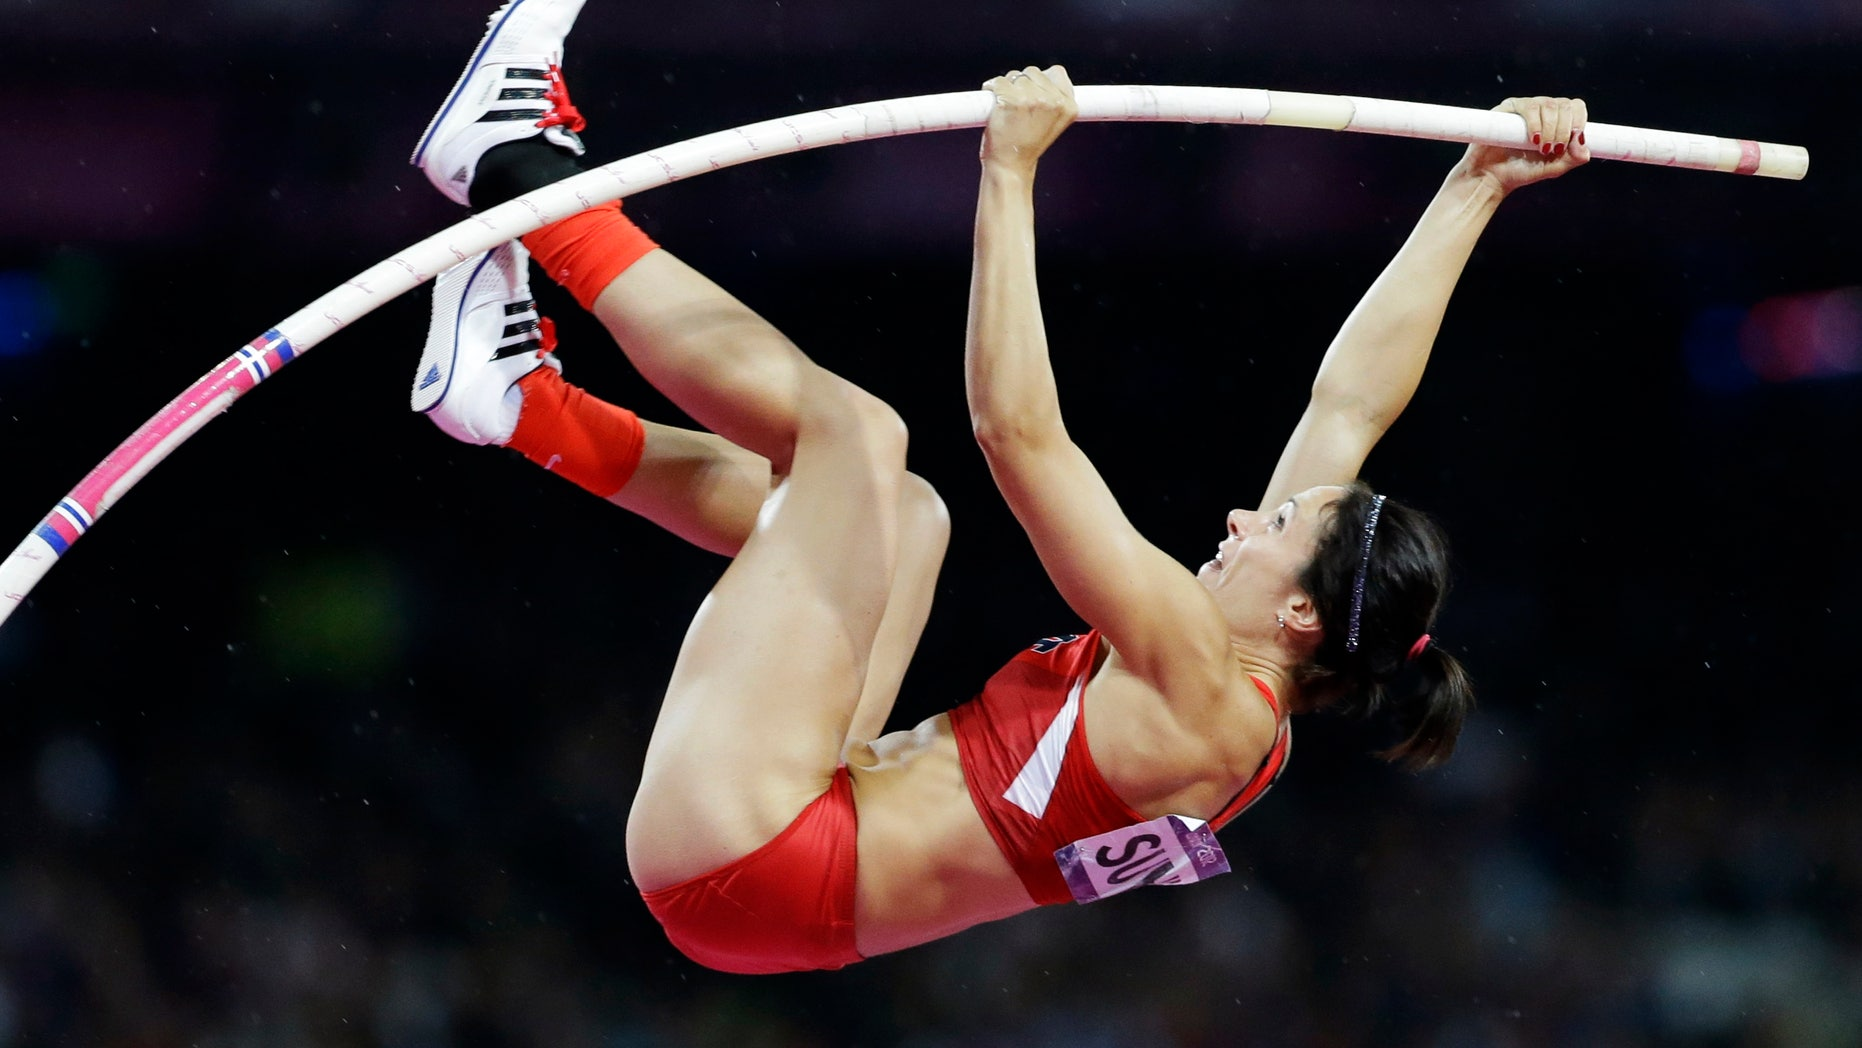 Aug. 6, 2012: United States' Jennifer Suhr competes to win gold in the women's pole vault final at the 2012 Summer Olympics in London.